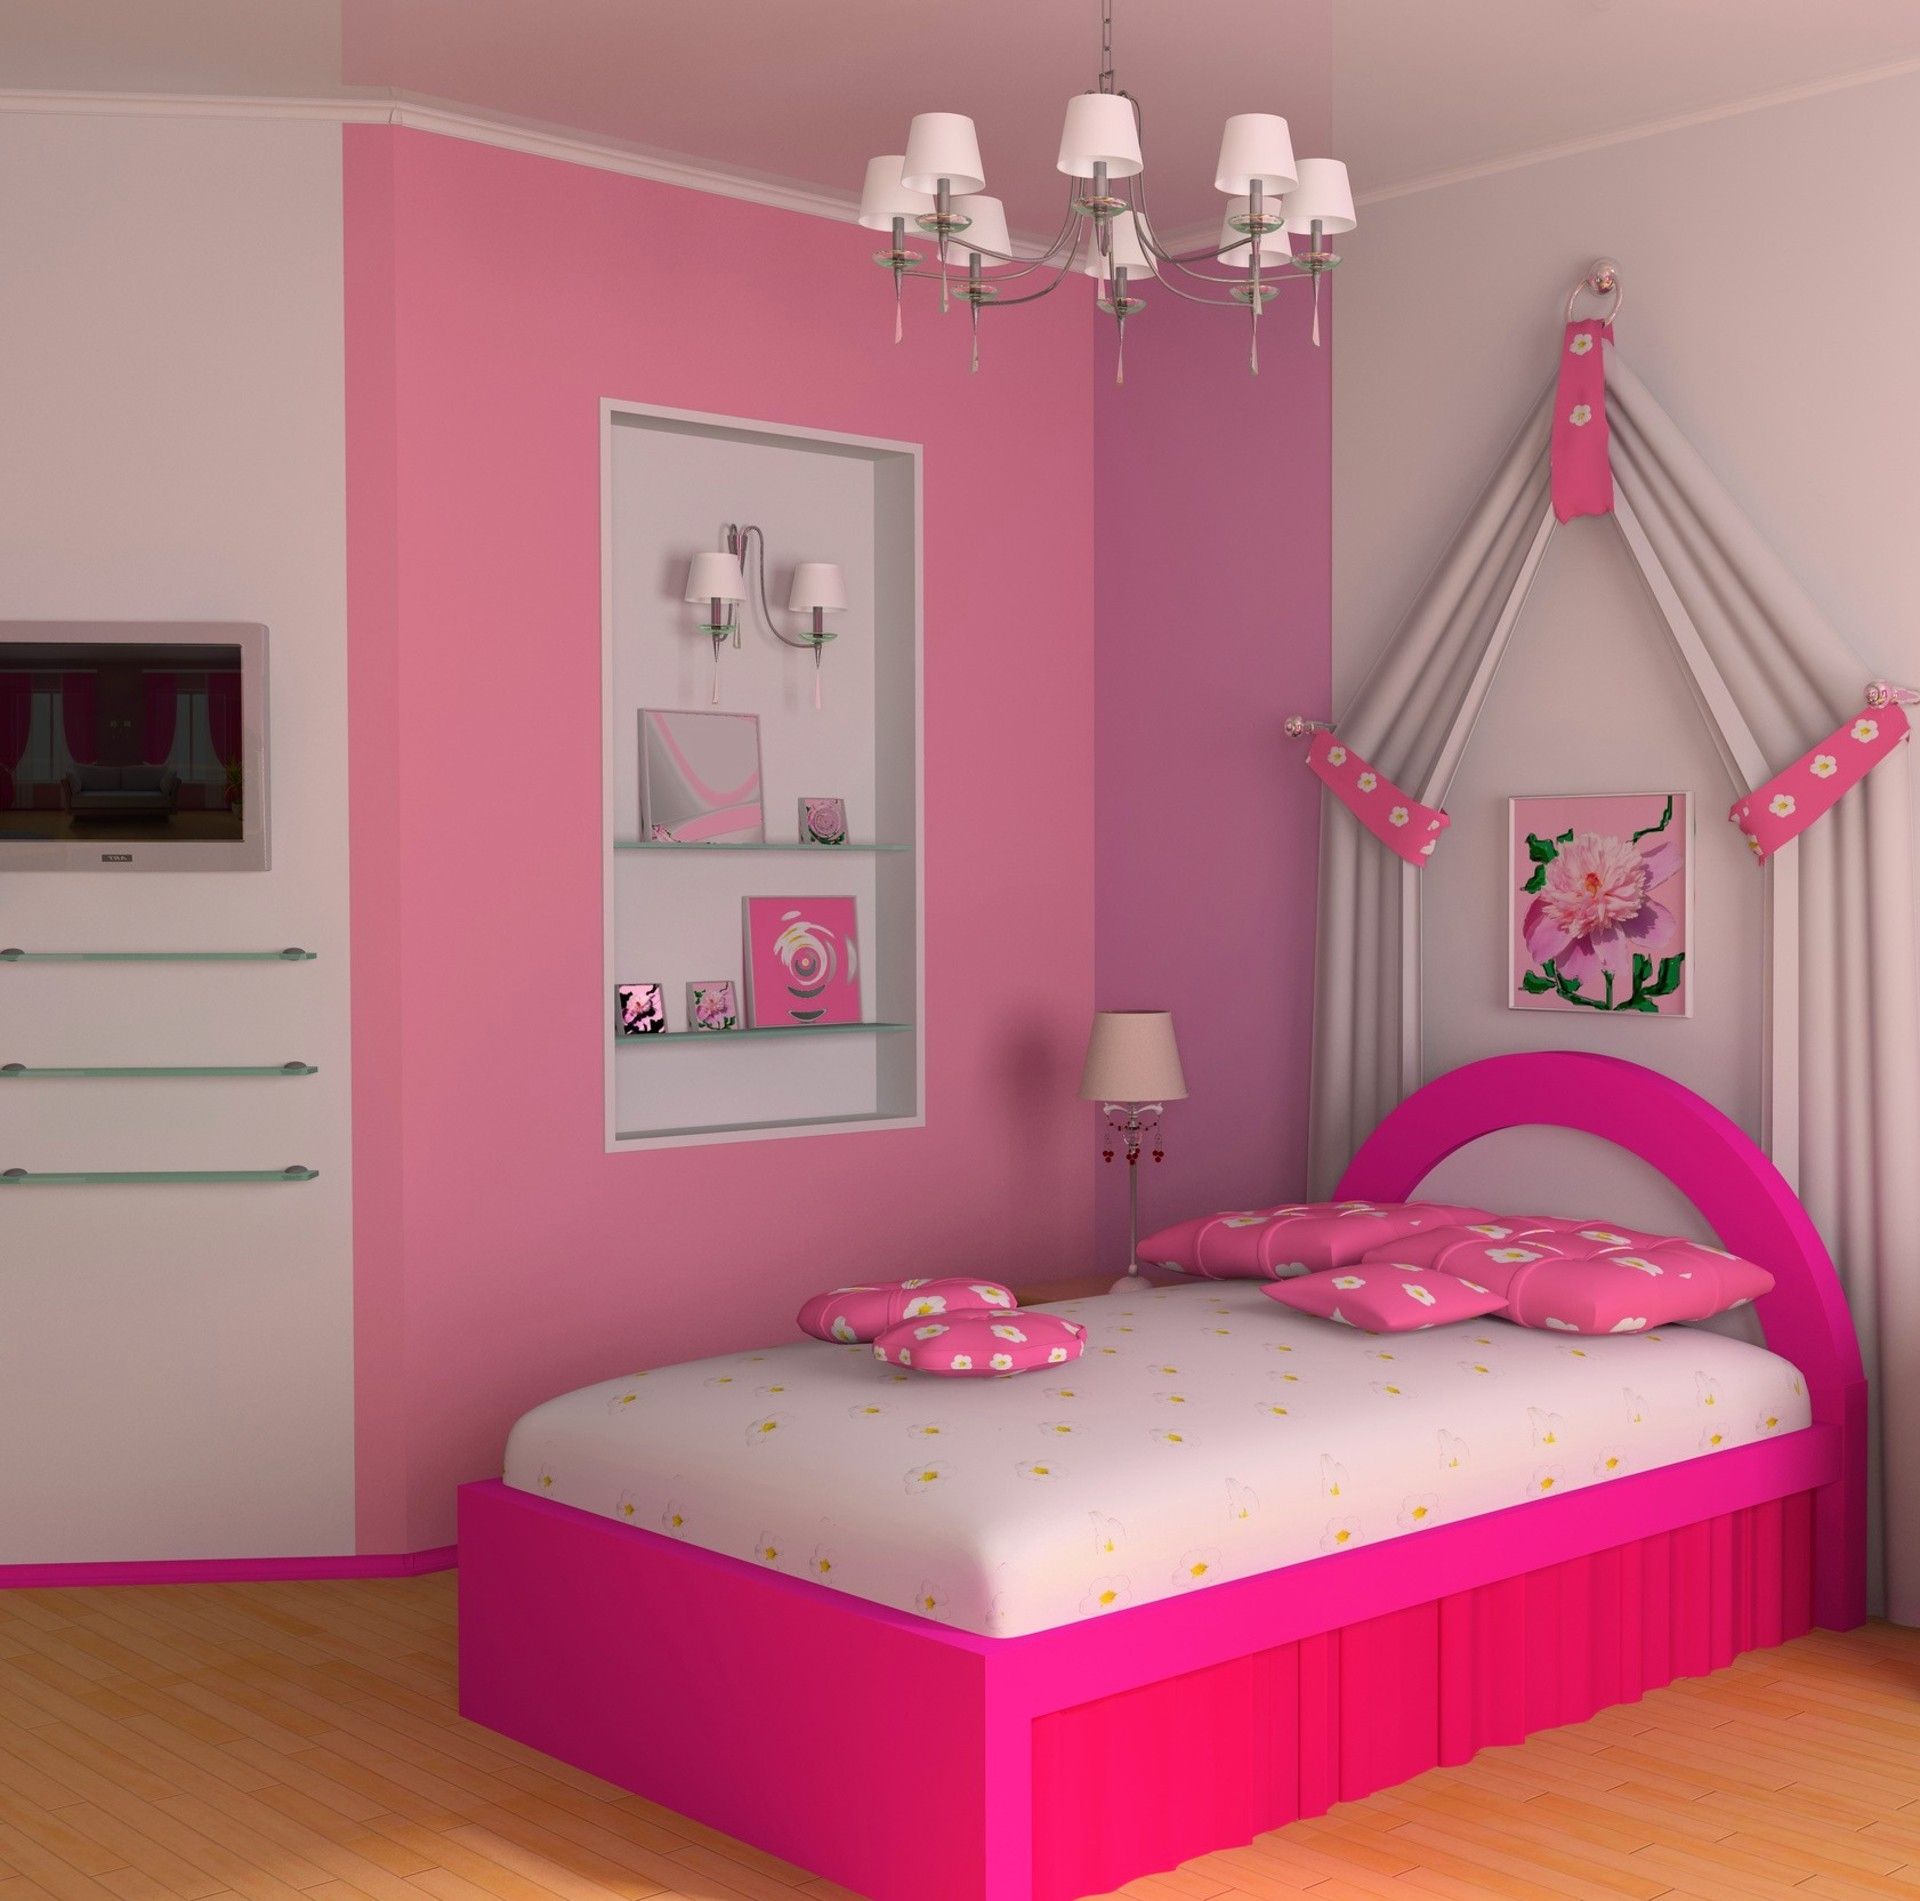 Bedroom Ideas 2016 Bedroom Chairs Dublin Design Of Kids Bedroom Elegant Bedroom Color Ideas: Simple Pikn Barbie Themed Teen Girl Bedroom Design